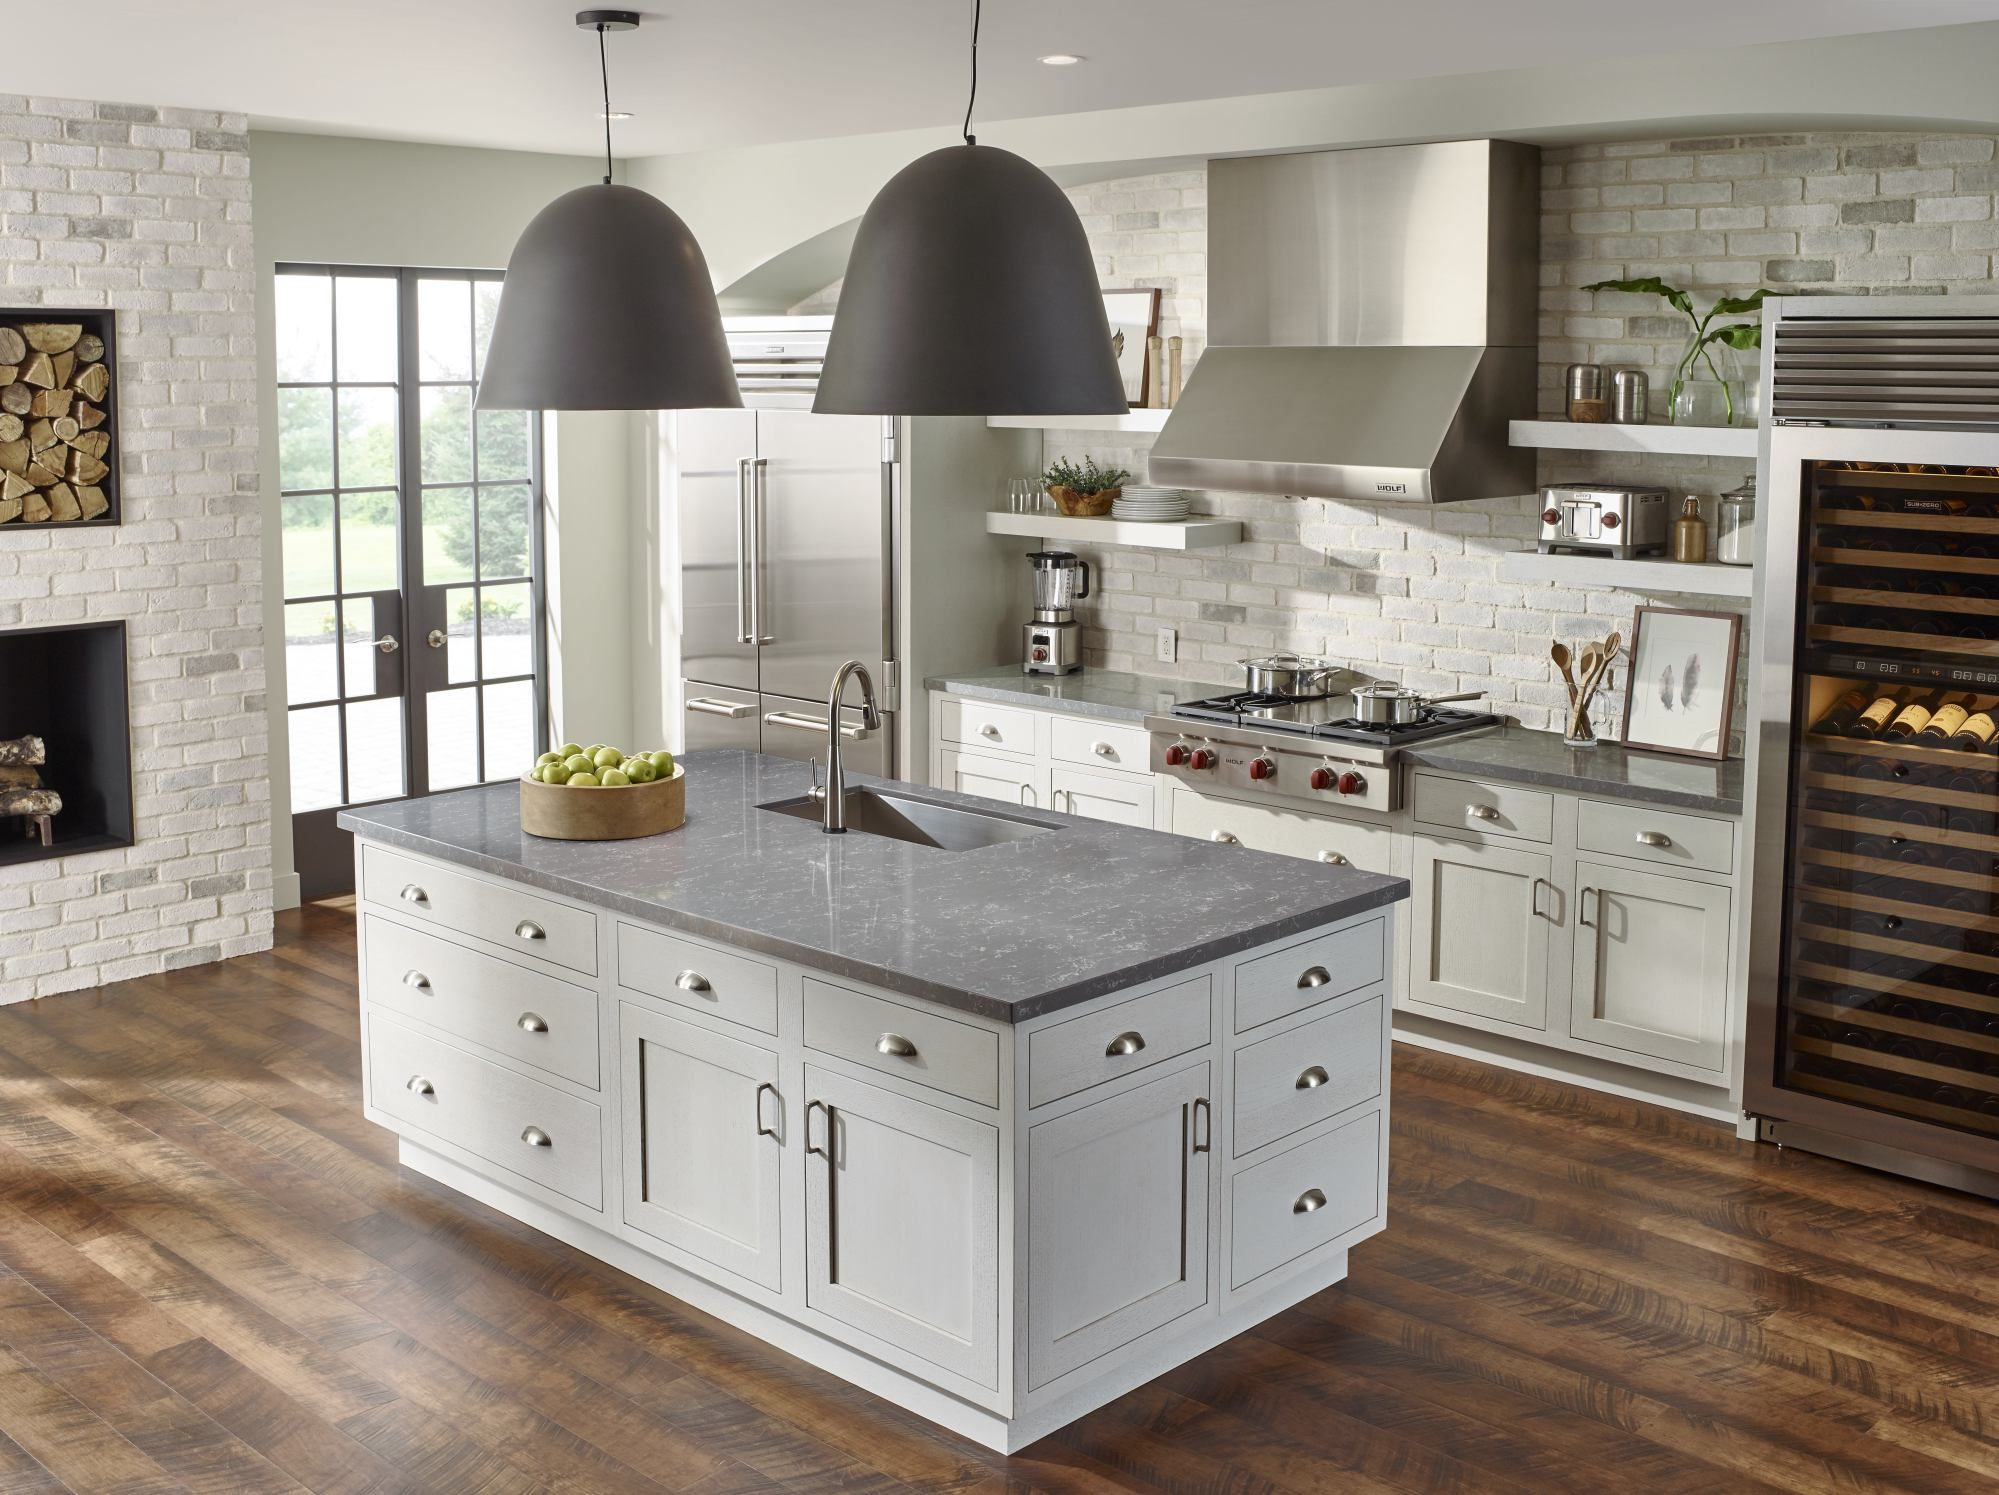 Kitchen Styling Corian Colors Styling Kitchen Counters Kitchens Kitchen